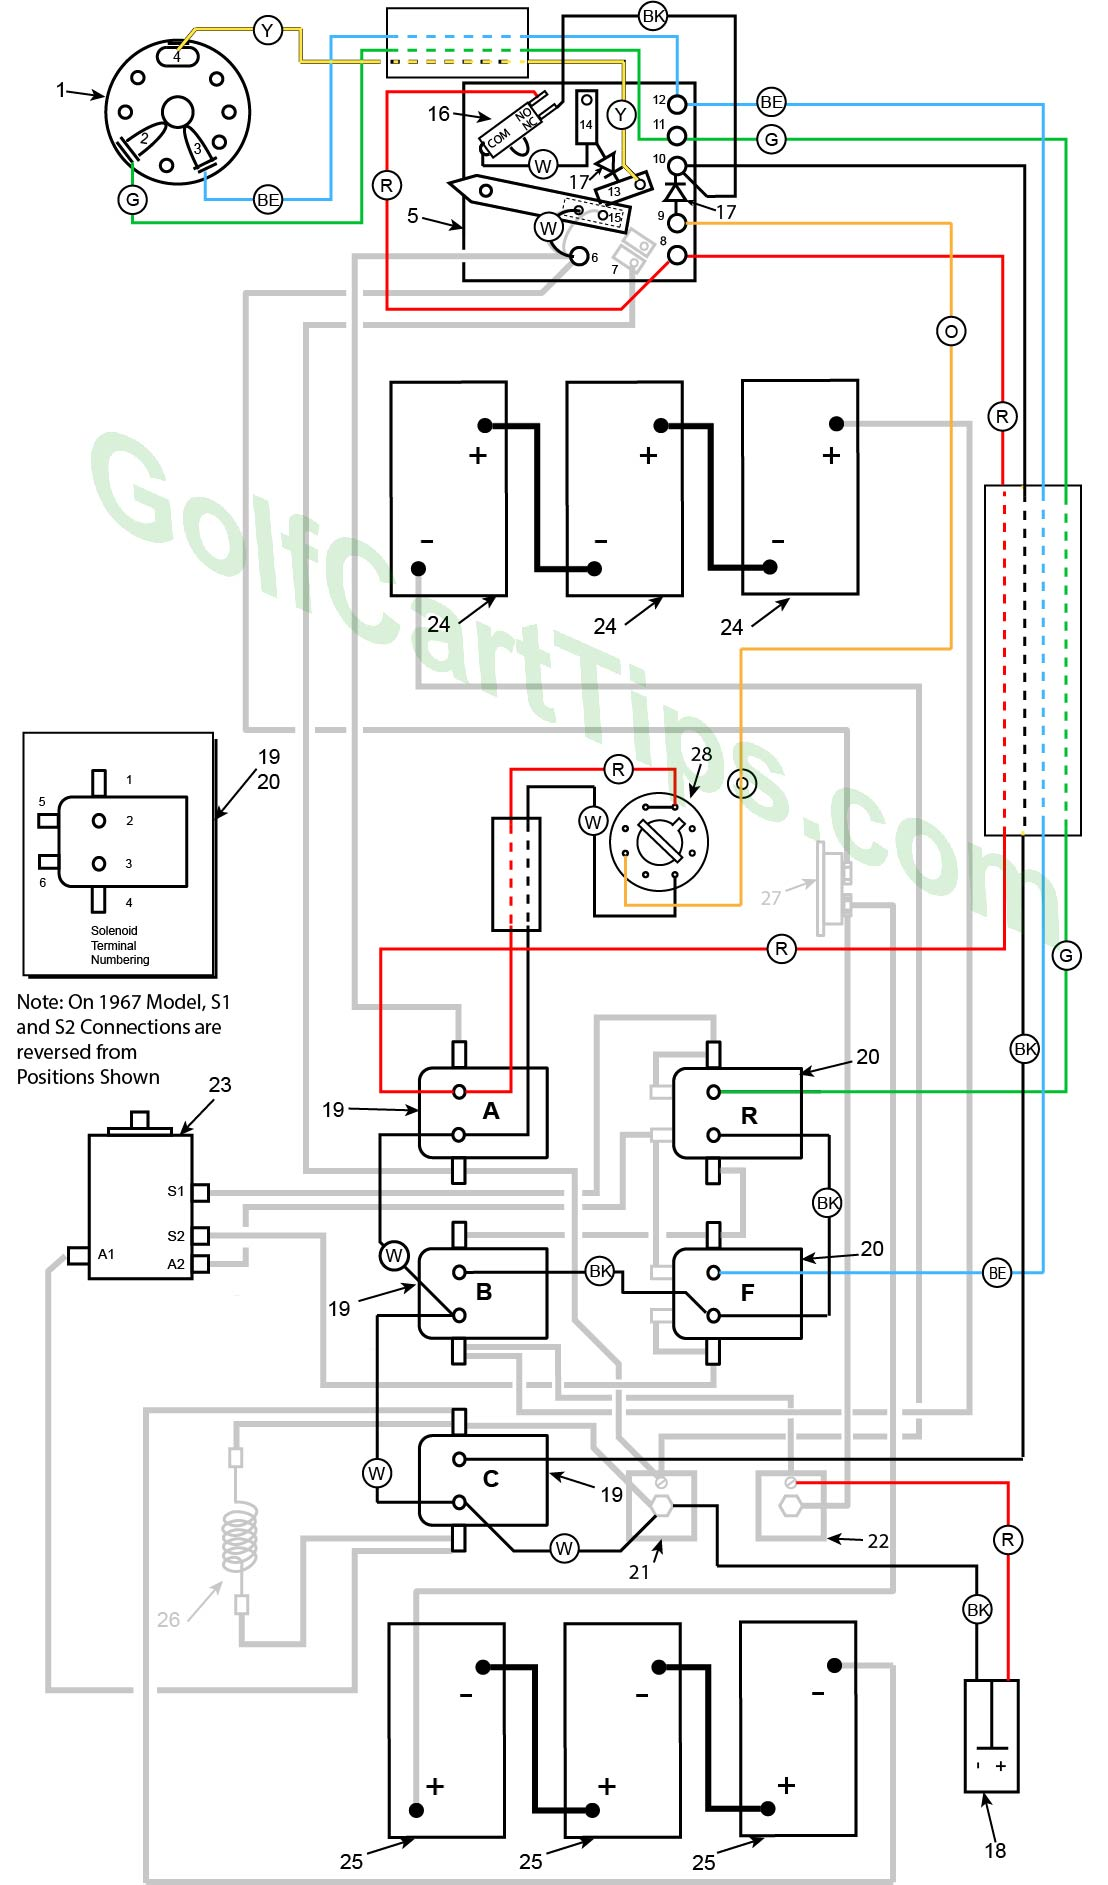 hight resolution of 1967 70 model de control circuit wiring diagram for 16 gauge wire harley davidson